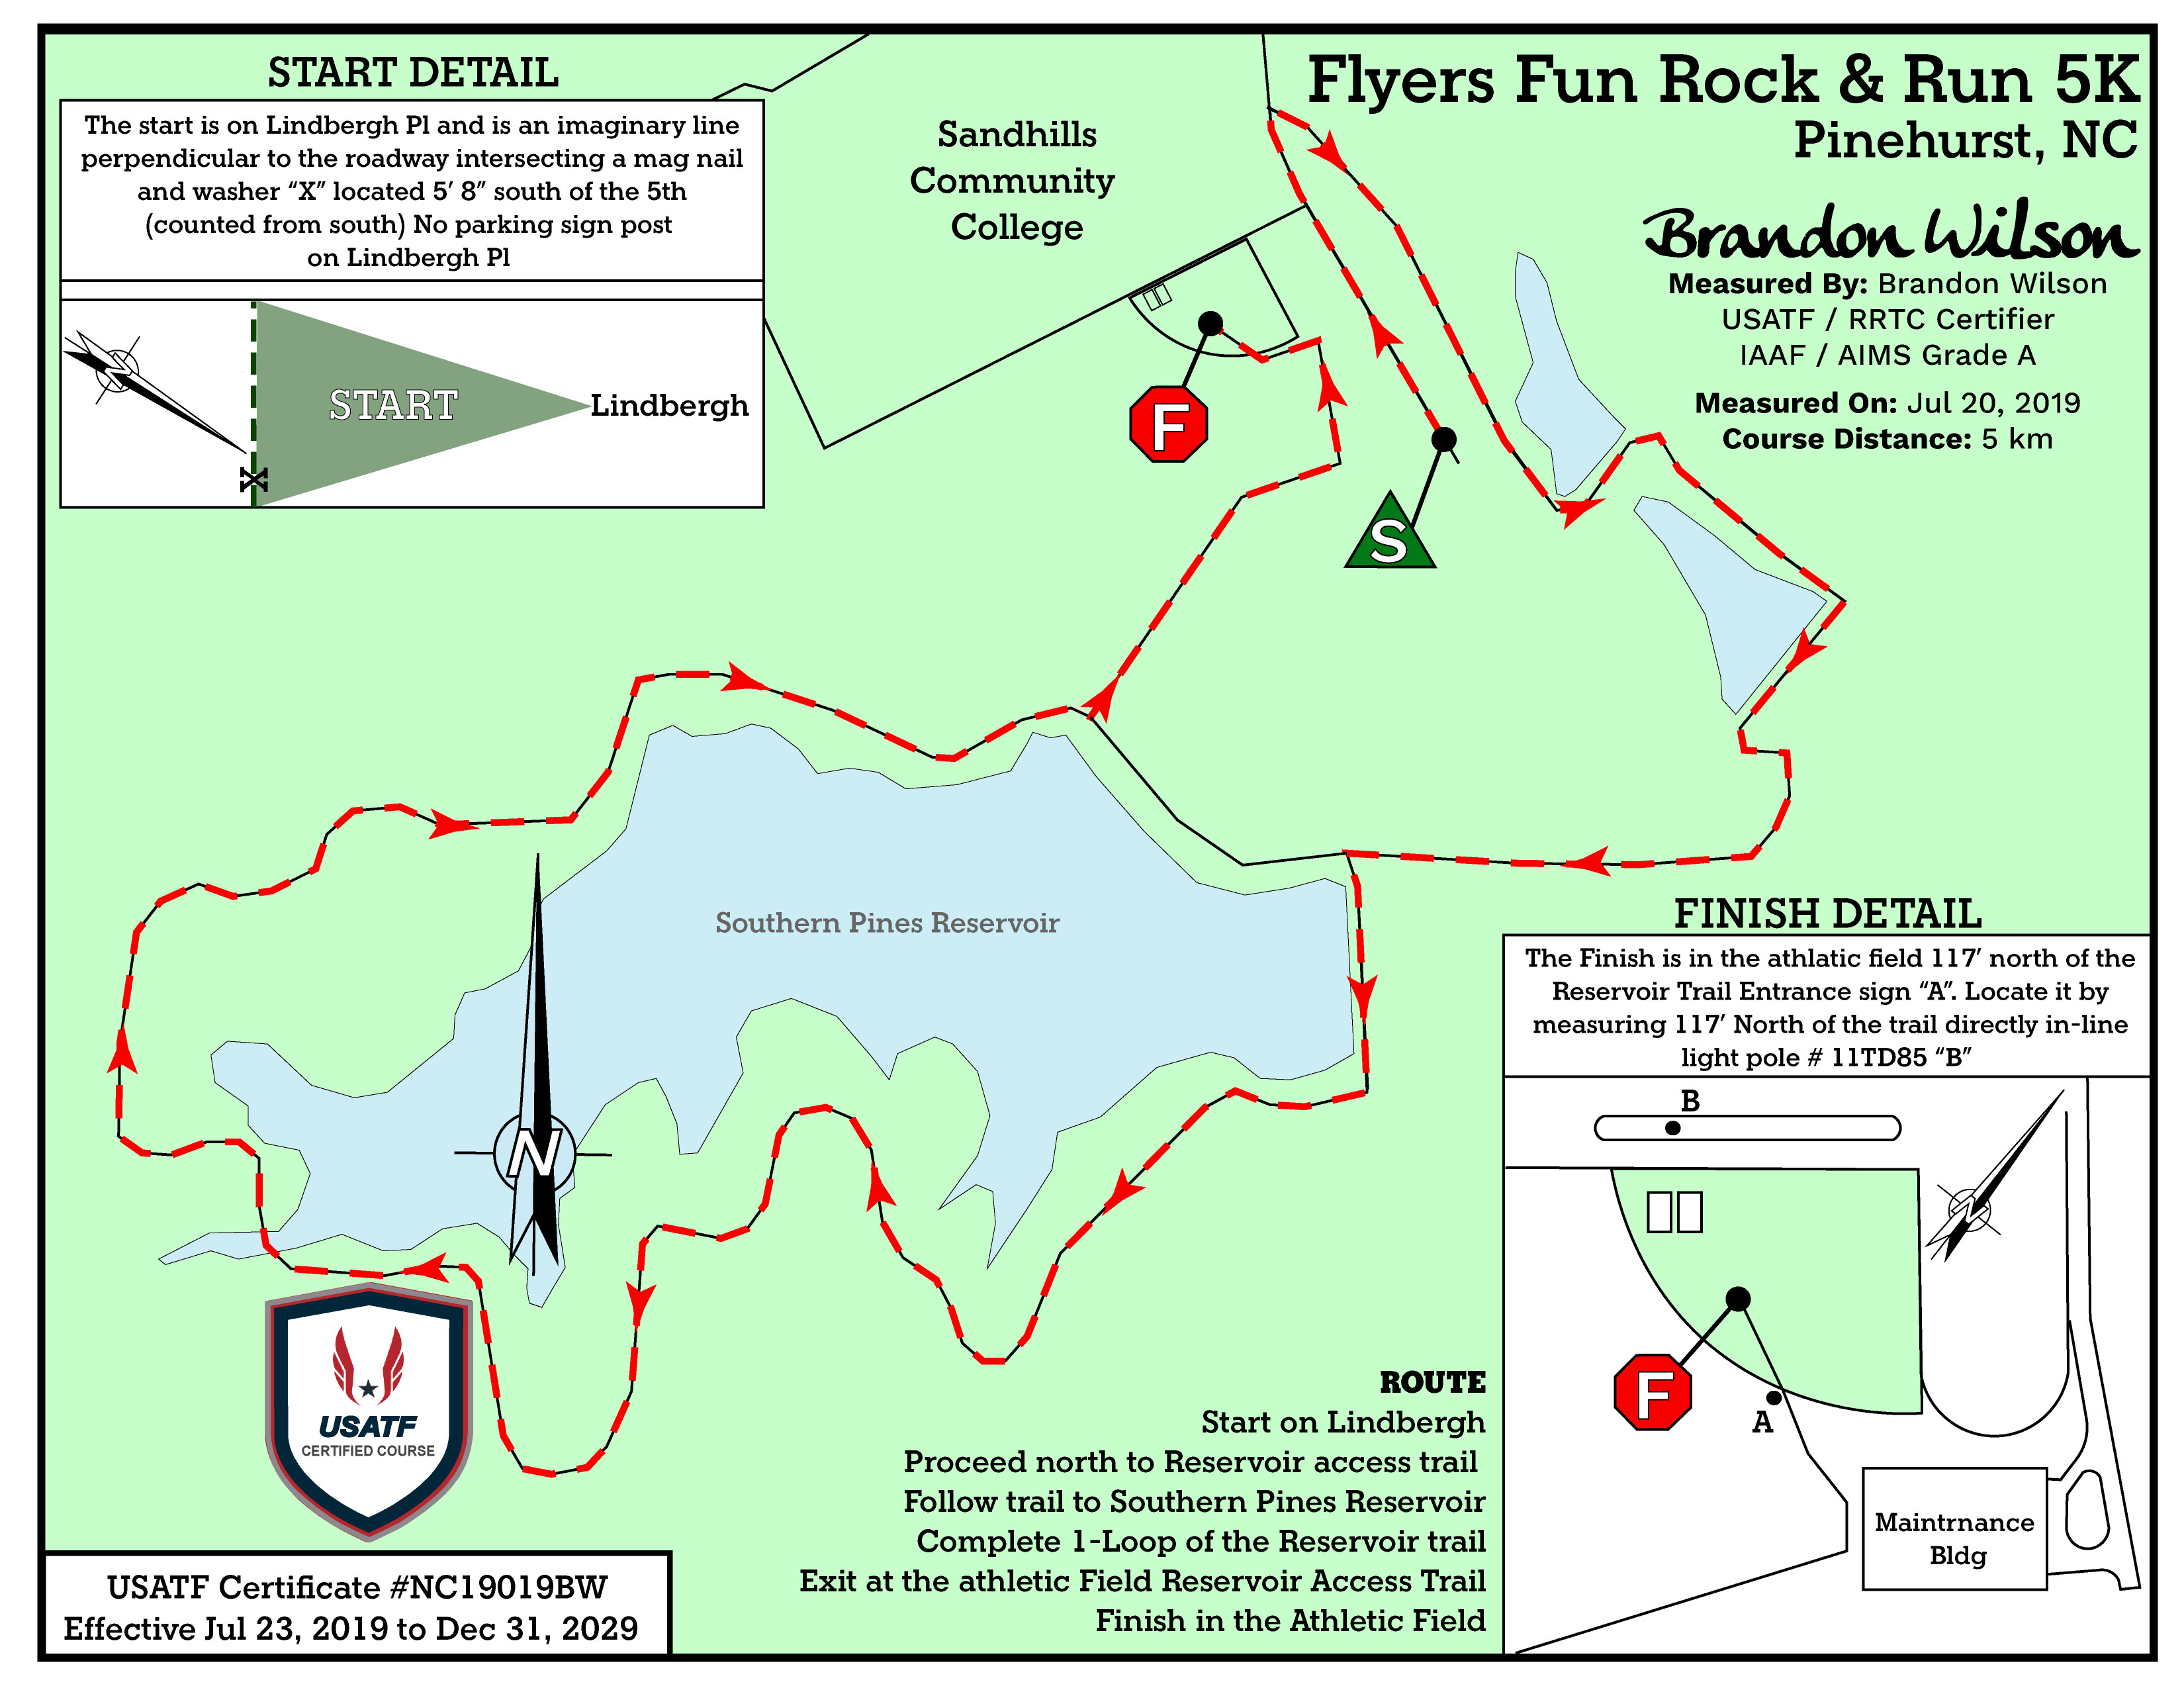 Flyers Fun Rock & Run 5K on charlotte campus map, gaston college campus map, appalachian state university campus map, guilford college campus map, east carolina university campus map, sierra college campus map, sacramento city college campus map, bennett college campus map, elizabeth city state university campus map, fayetteville campus map, university of north carolina at chapel hill campus map, davidson college campus map, university of mount olive campus map, cape fear community college map, gardner-webb university campus map, san antonio college campus map, college of the albemarle campus map, saint leo university campus map, sandhills community college basketball, schoolcraft college campus map,